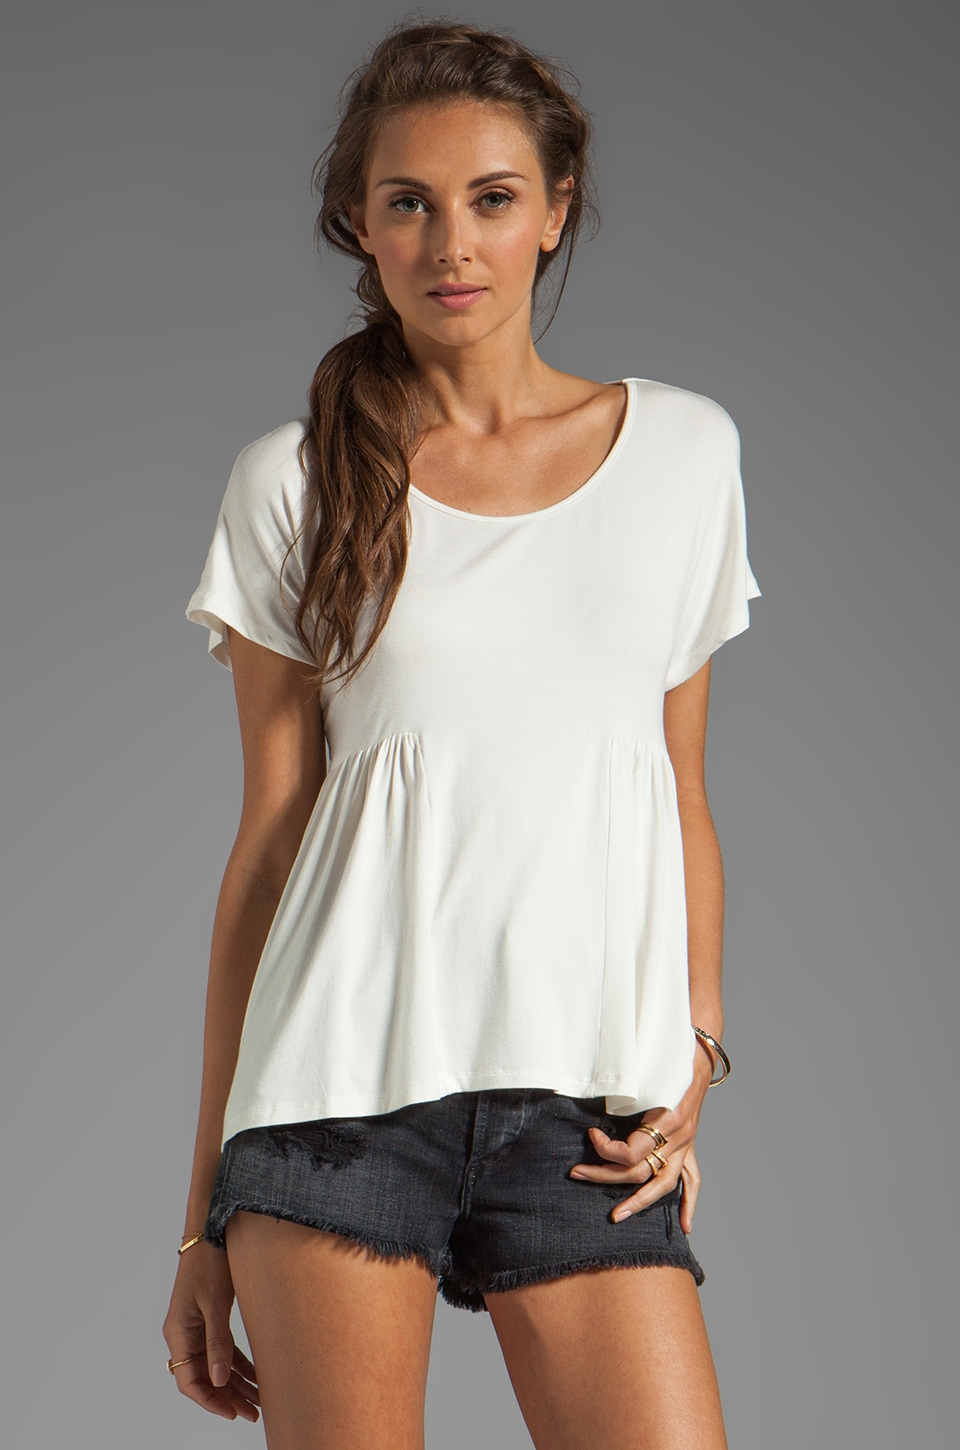 Lovers + Friends Take Me There Basic Short Sleeve Tee in White